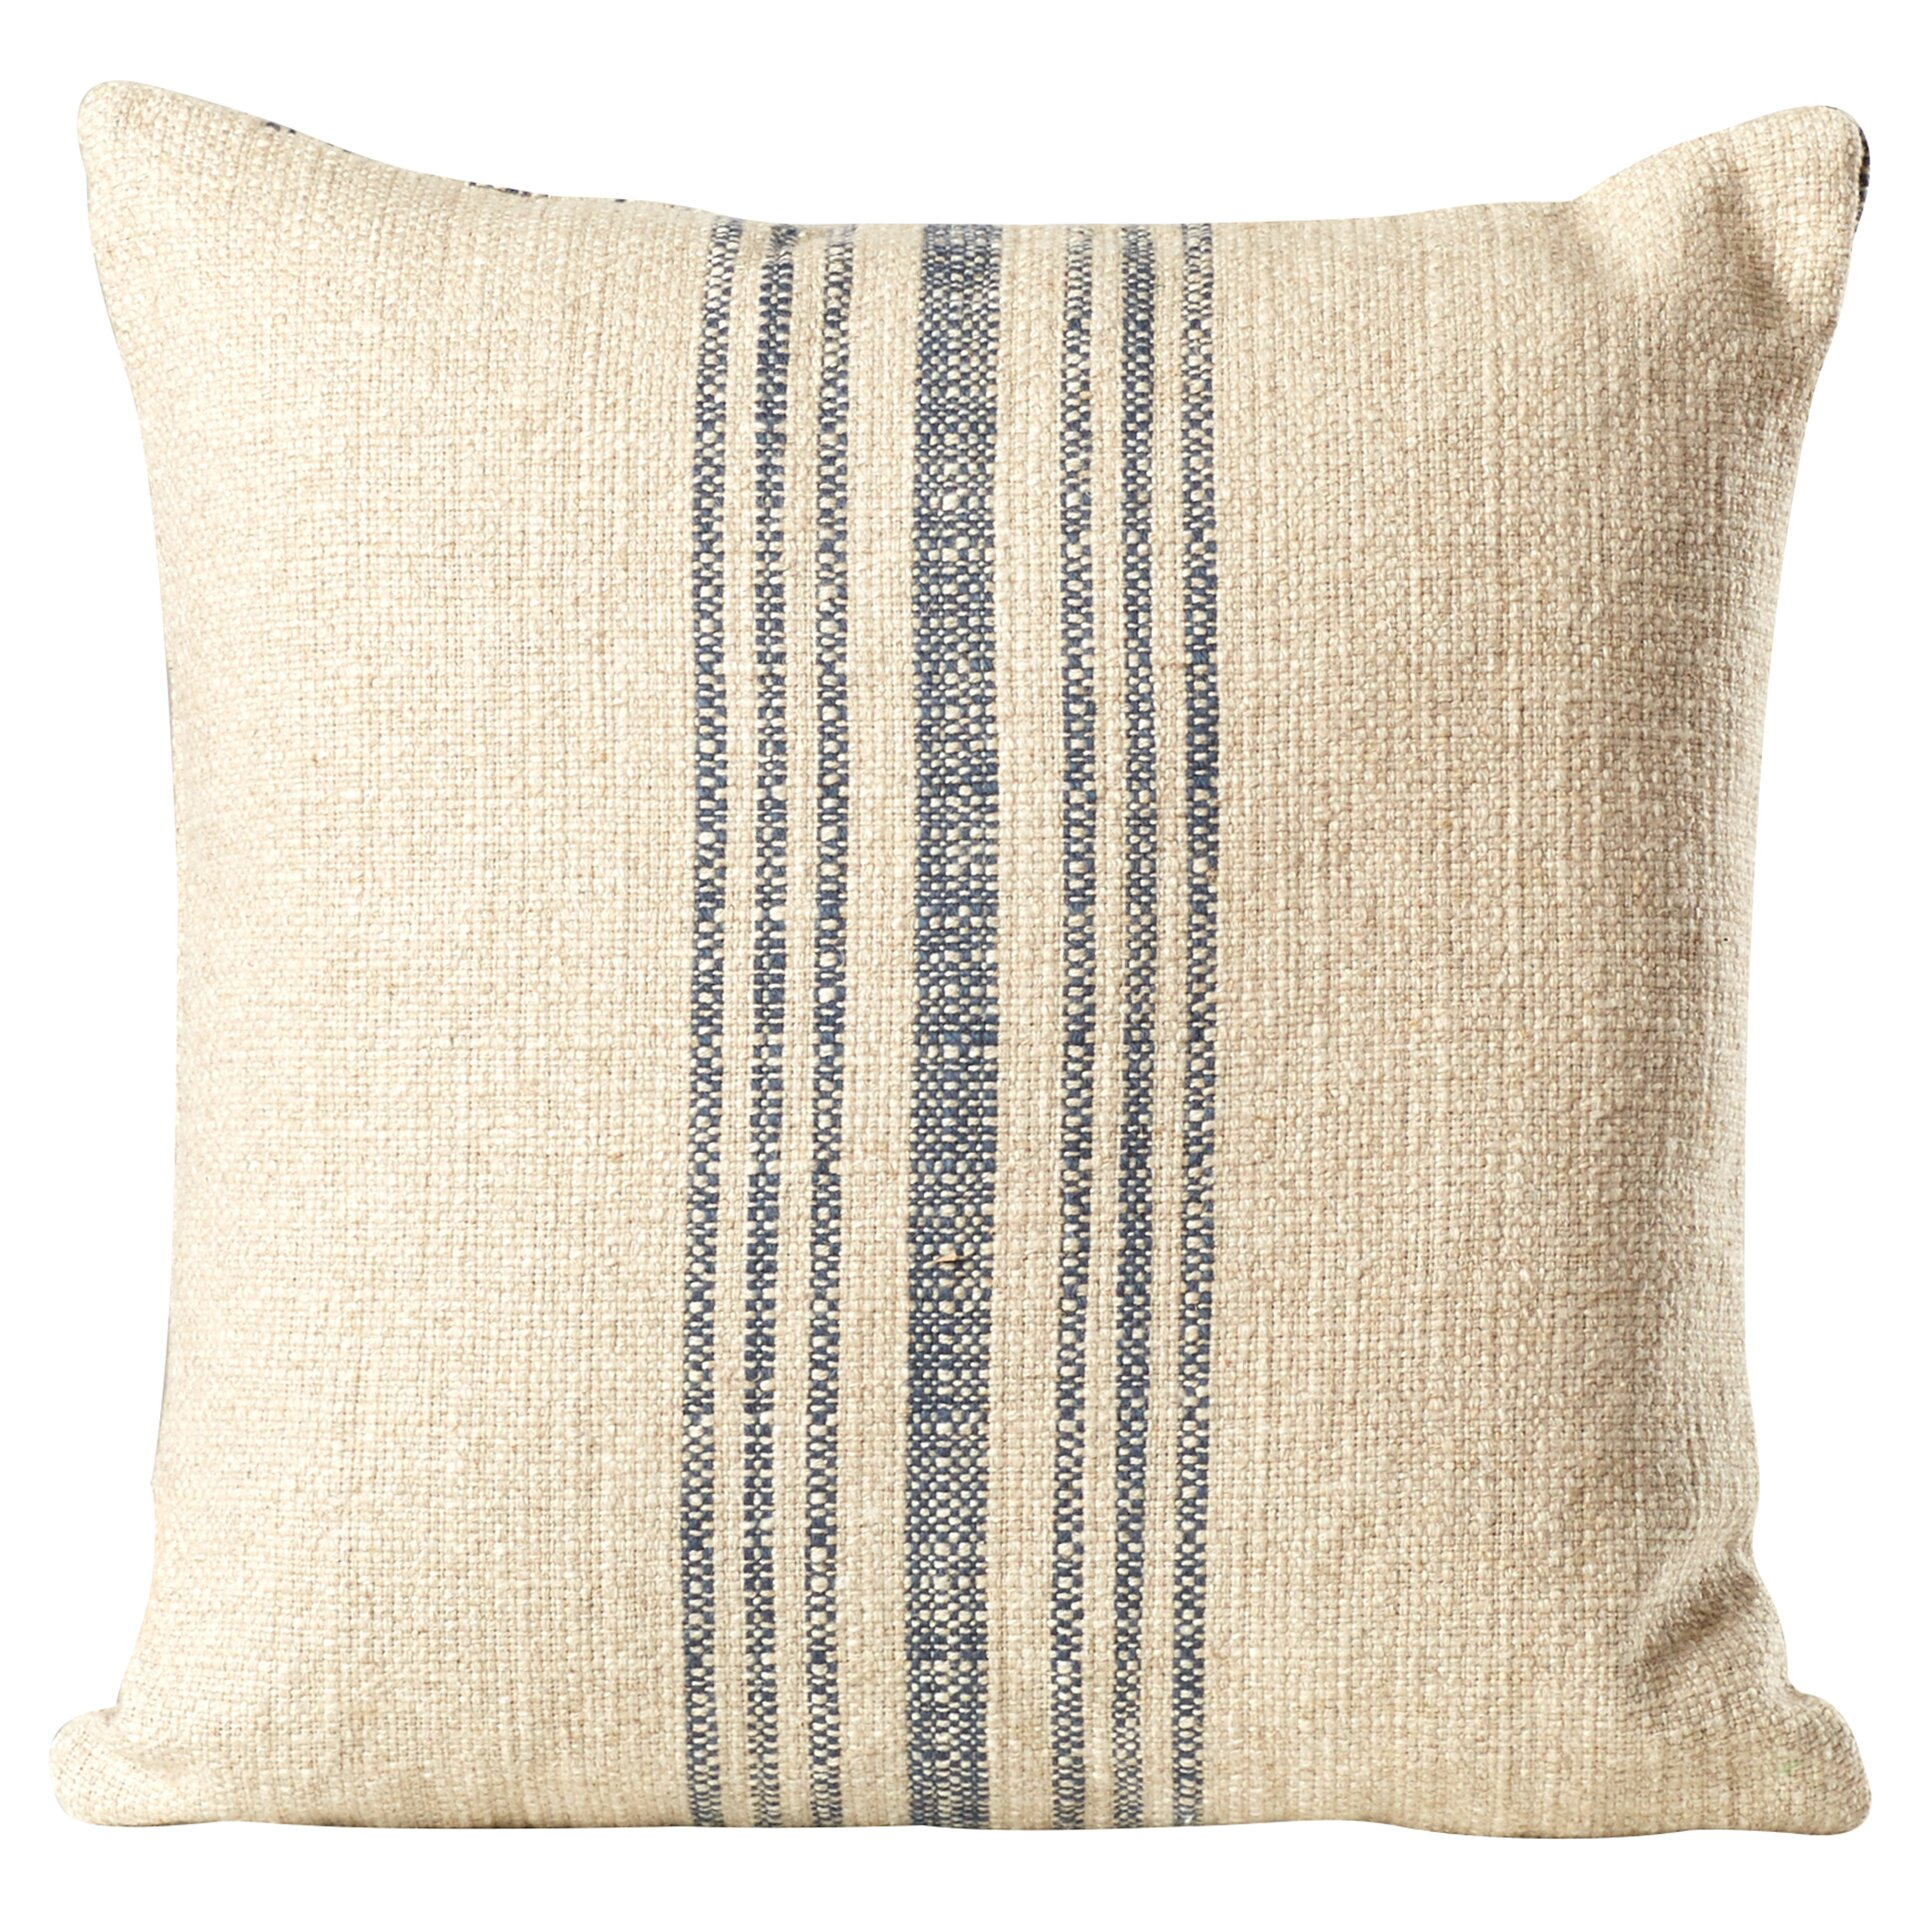 Decorative Pillows Linen : Lark Manor Stripe Linen Throw Pillow & Reviews Wayfair